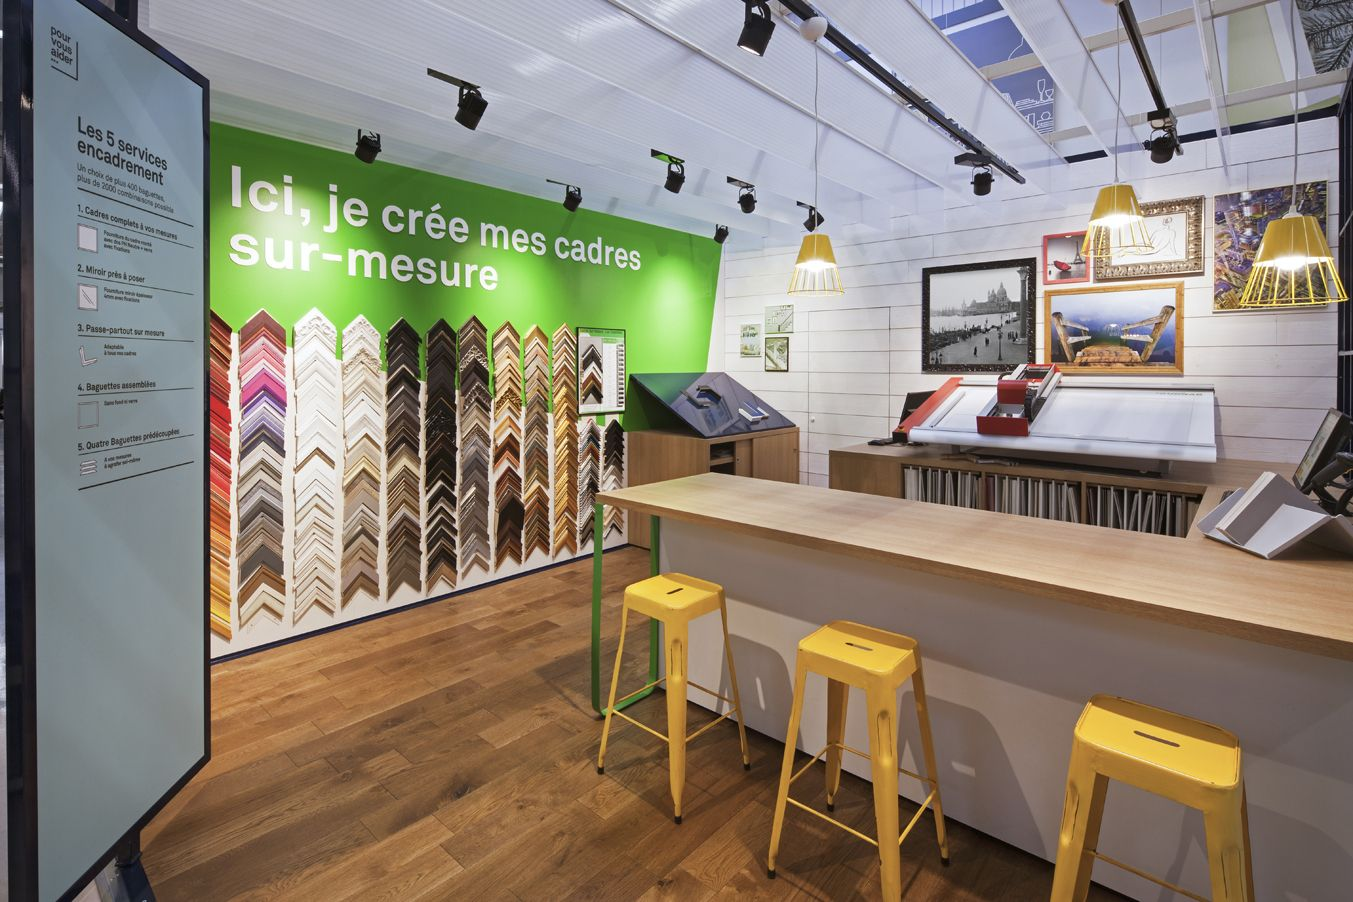 Dalziel Pow Work Leroy Merlin With Images Retail Design Retail Design Blog Retail Interior